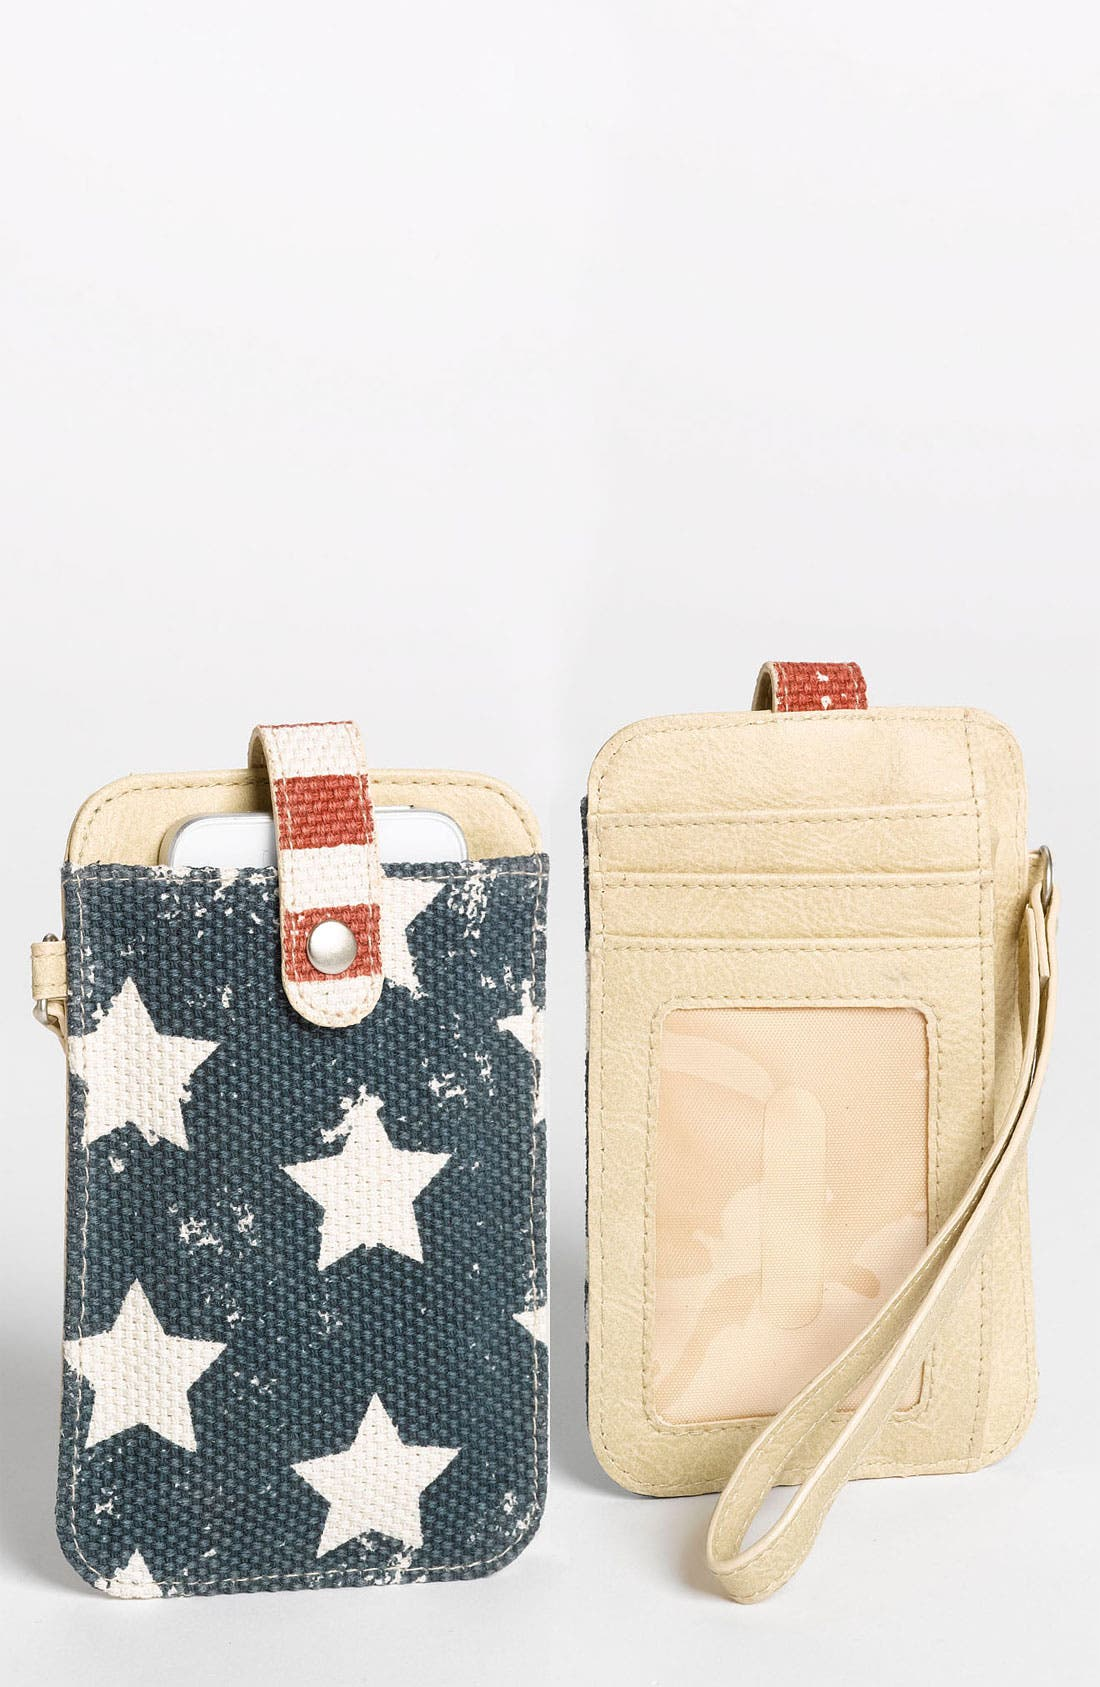 Alternate Image 1 Selected - T-shirt & Jeans 'American' Smartphone Wallet Case